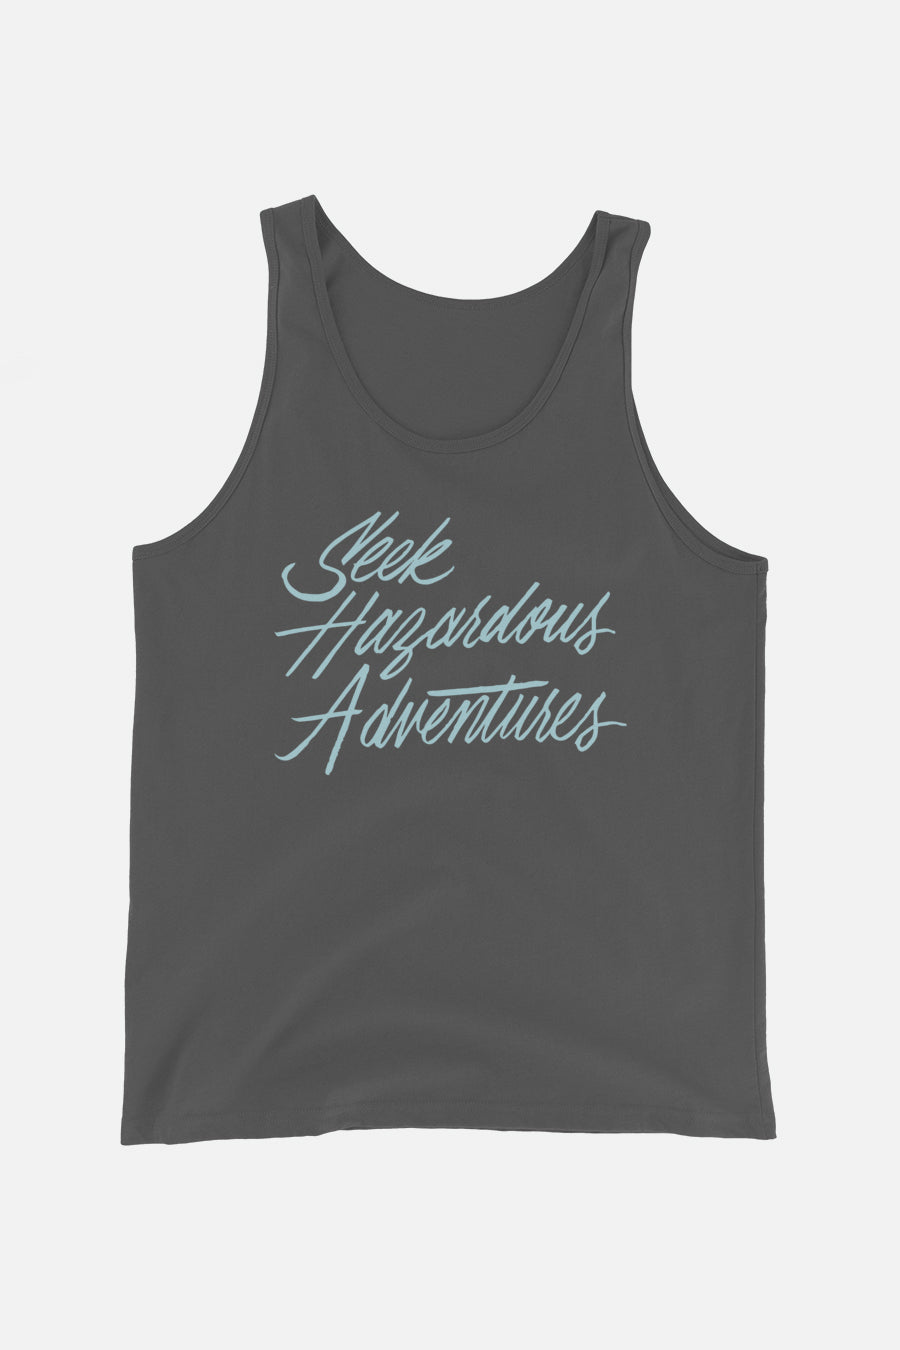 Seek Hazardous Adventures Unisex Tank Top